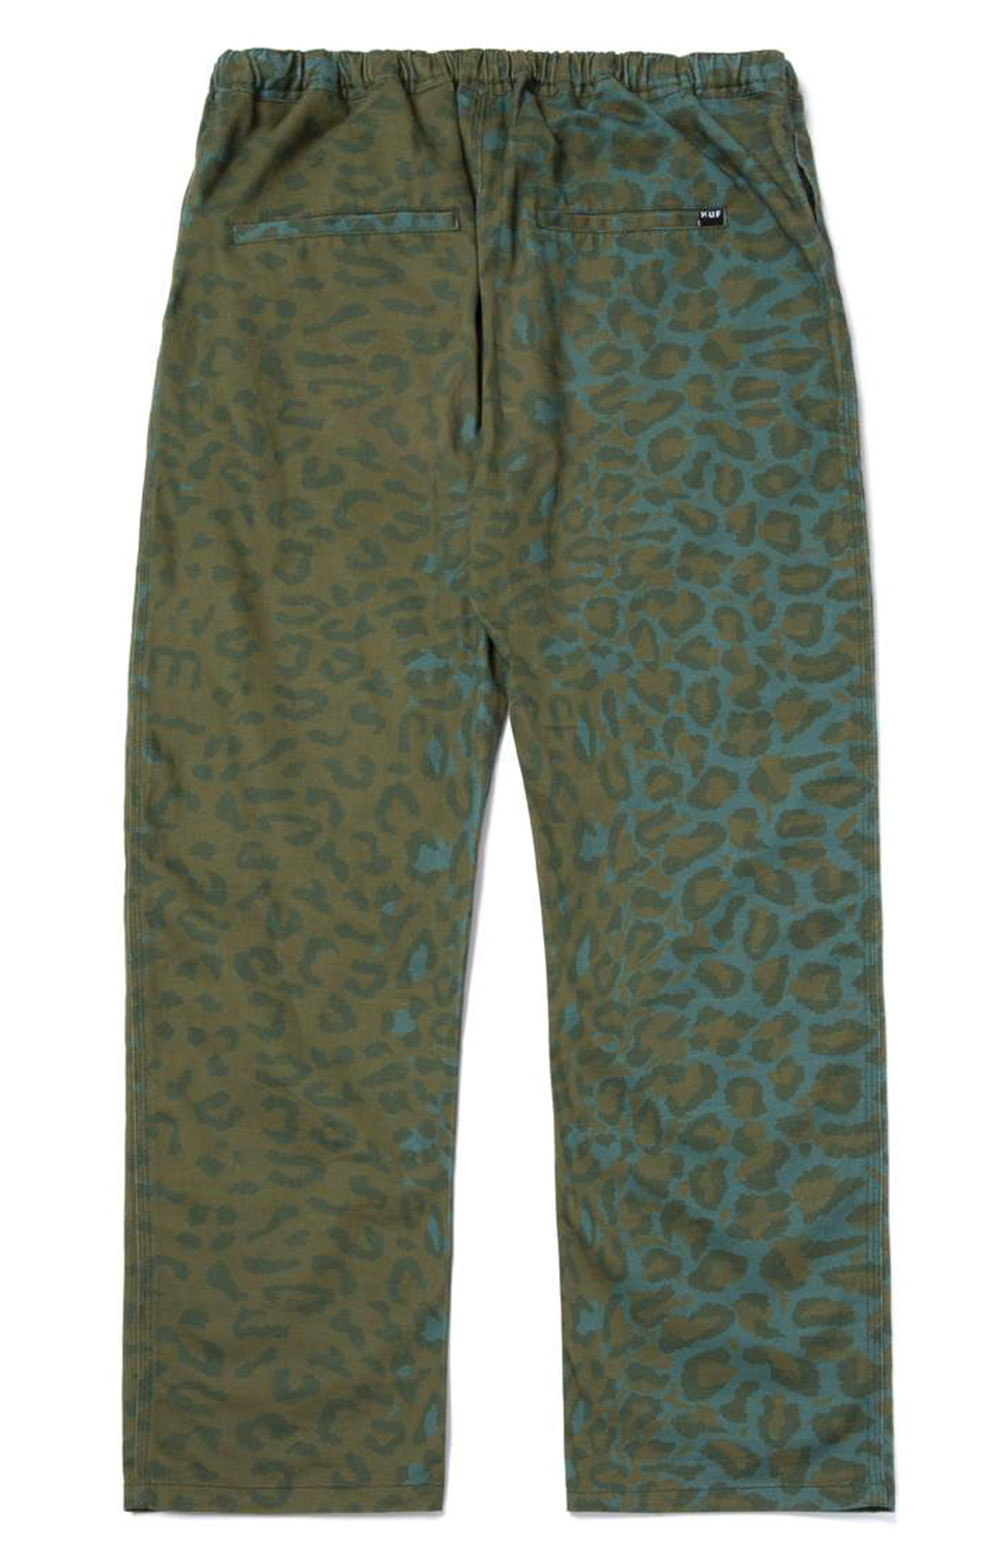 Printed Runyon Easy Pant - Leopard Camo  2